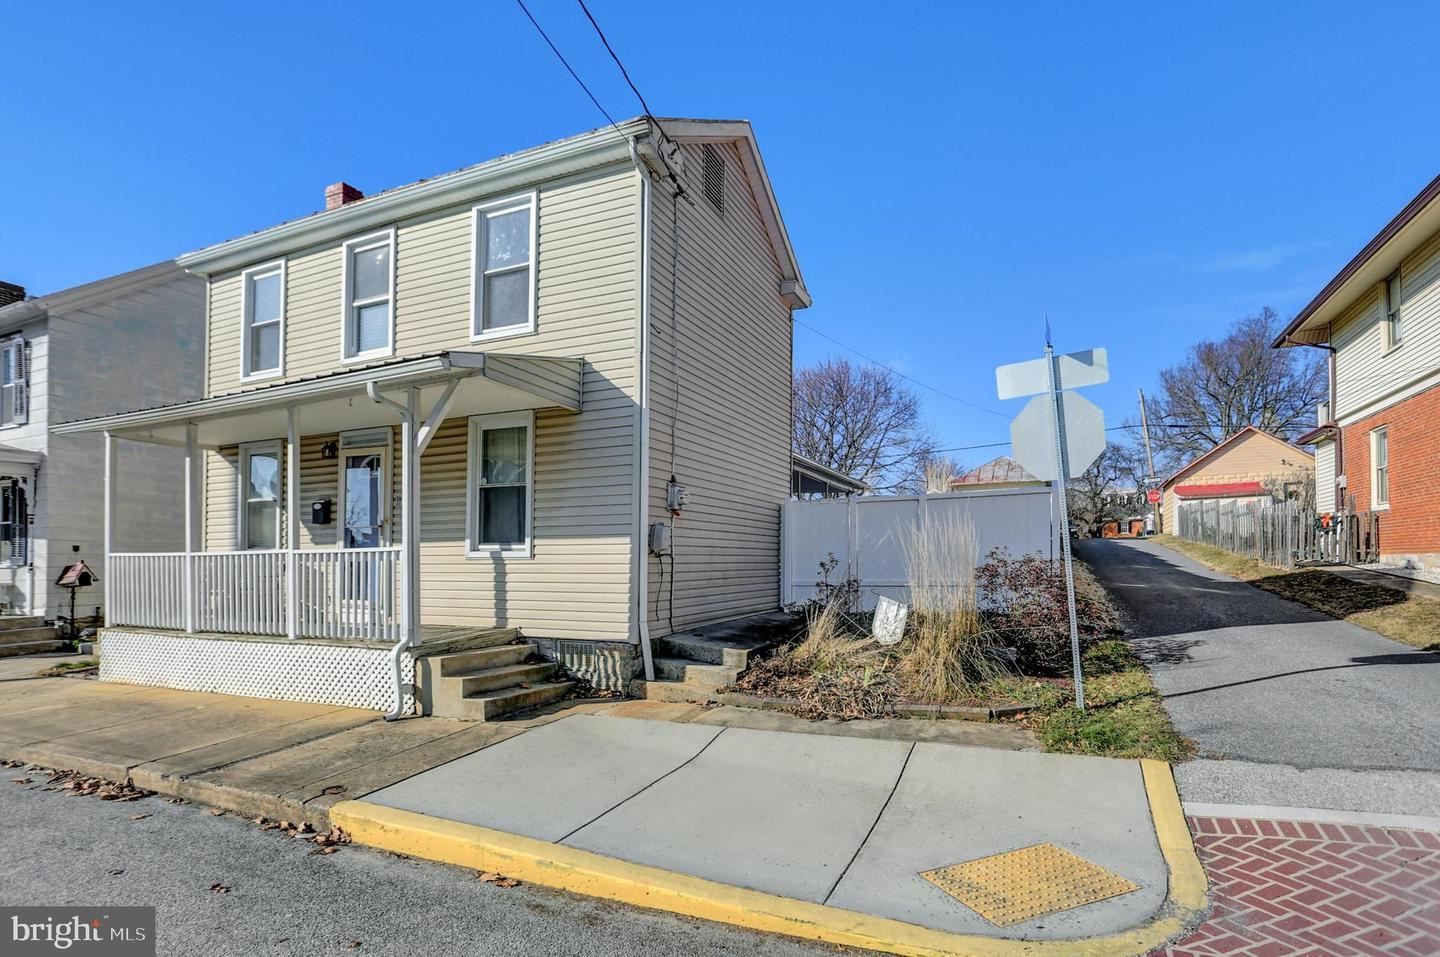 Photo of 11 CHESTNUT ST, NEWVILLE, PA 17241 (MLS # PACB131280)